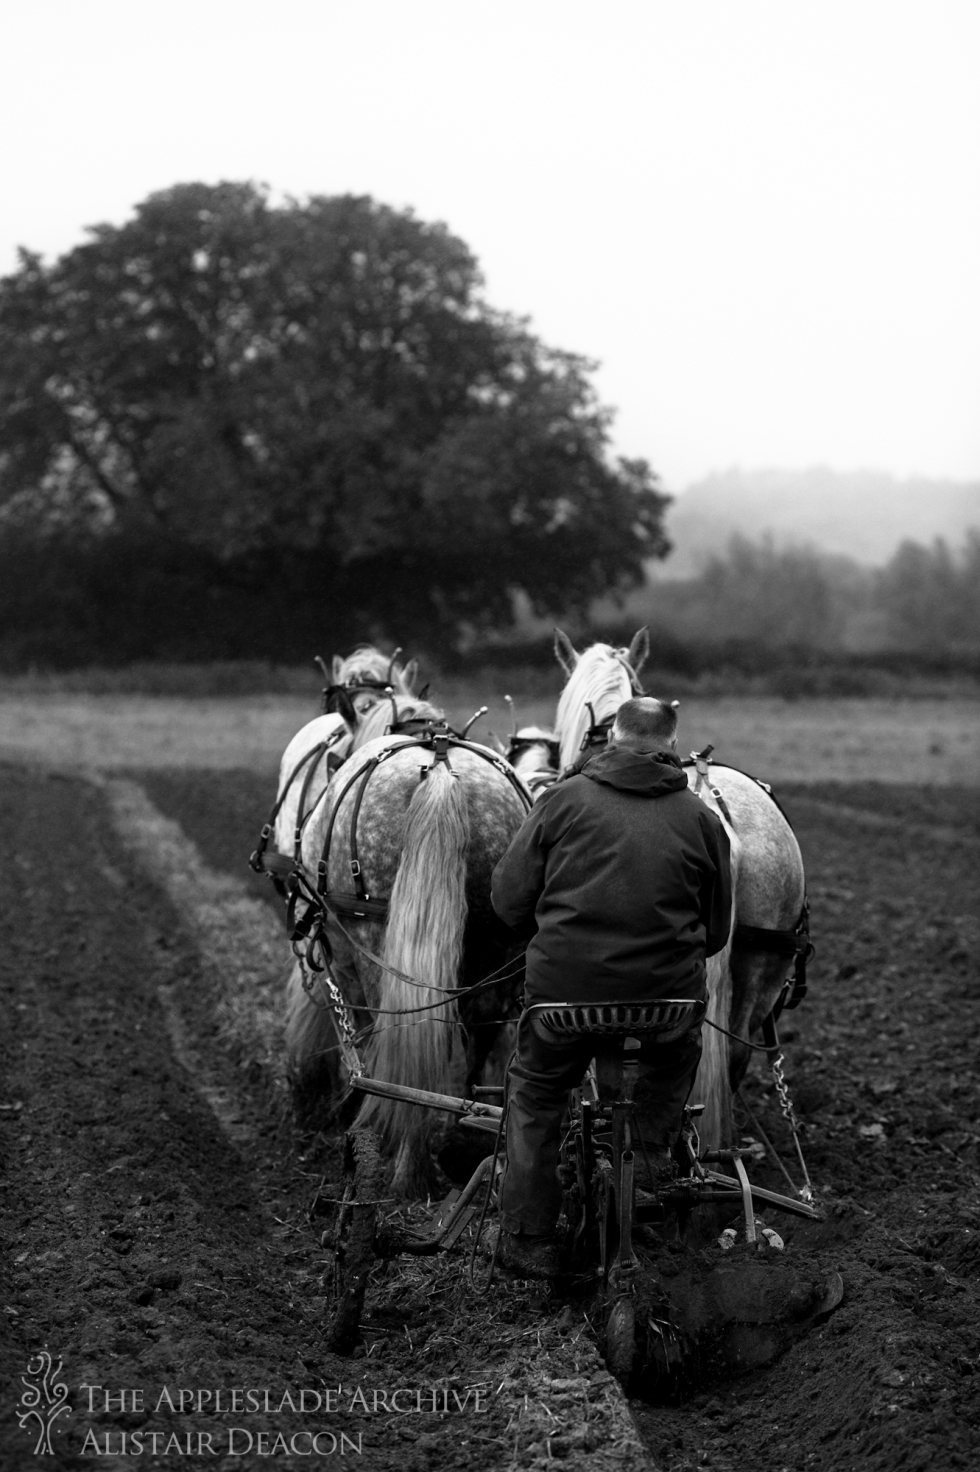 Robert Sampson ploughing with a team of Percherons, SCHHA Ploughing Match, Charford Manor Farm, Nr. Breamore, Hampshire, 20th Oct 2013